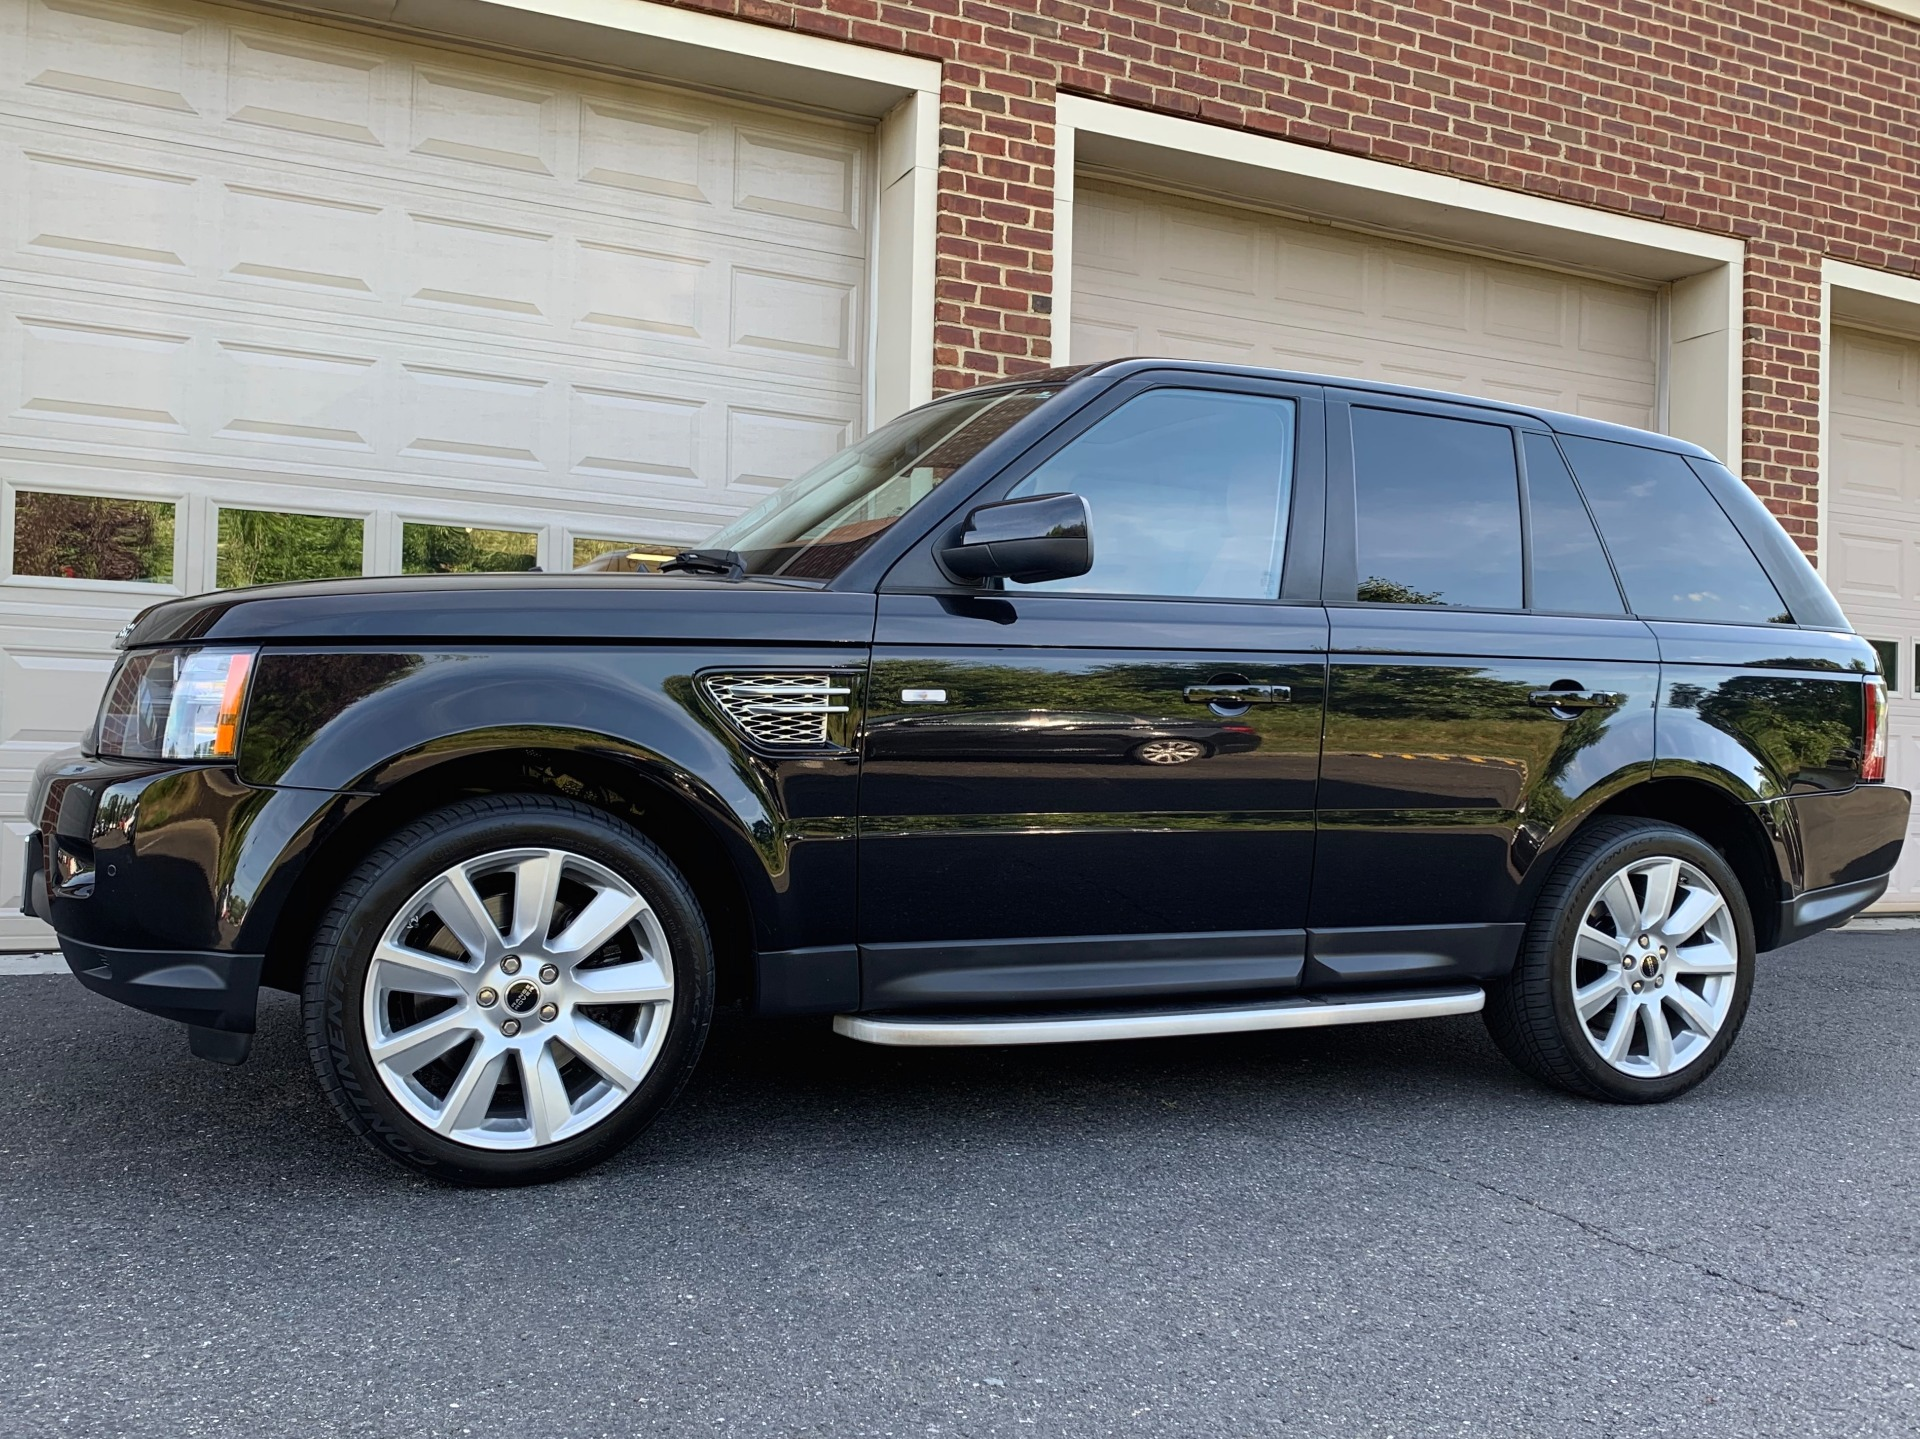 Used-2013-Land-Rover-Range-Rover-Sport-HSE-LUX